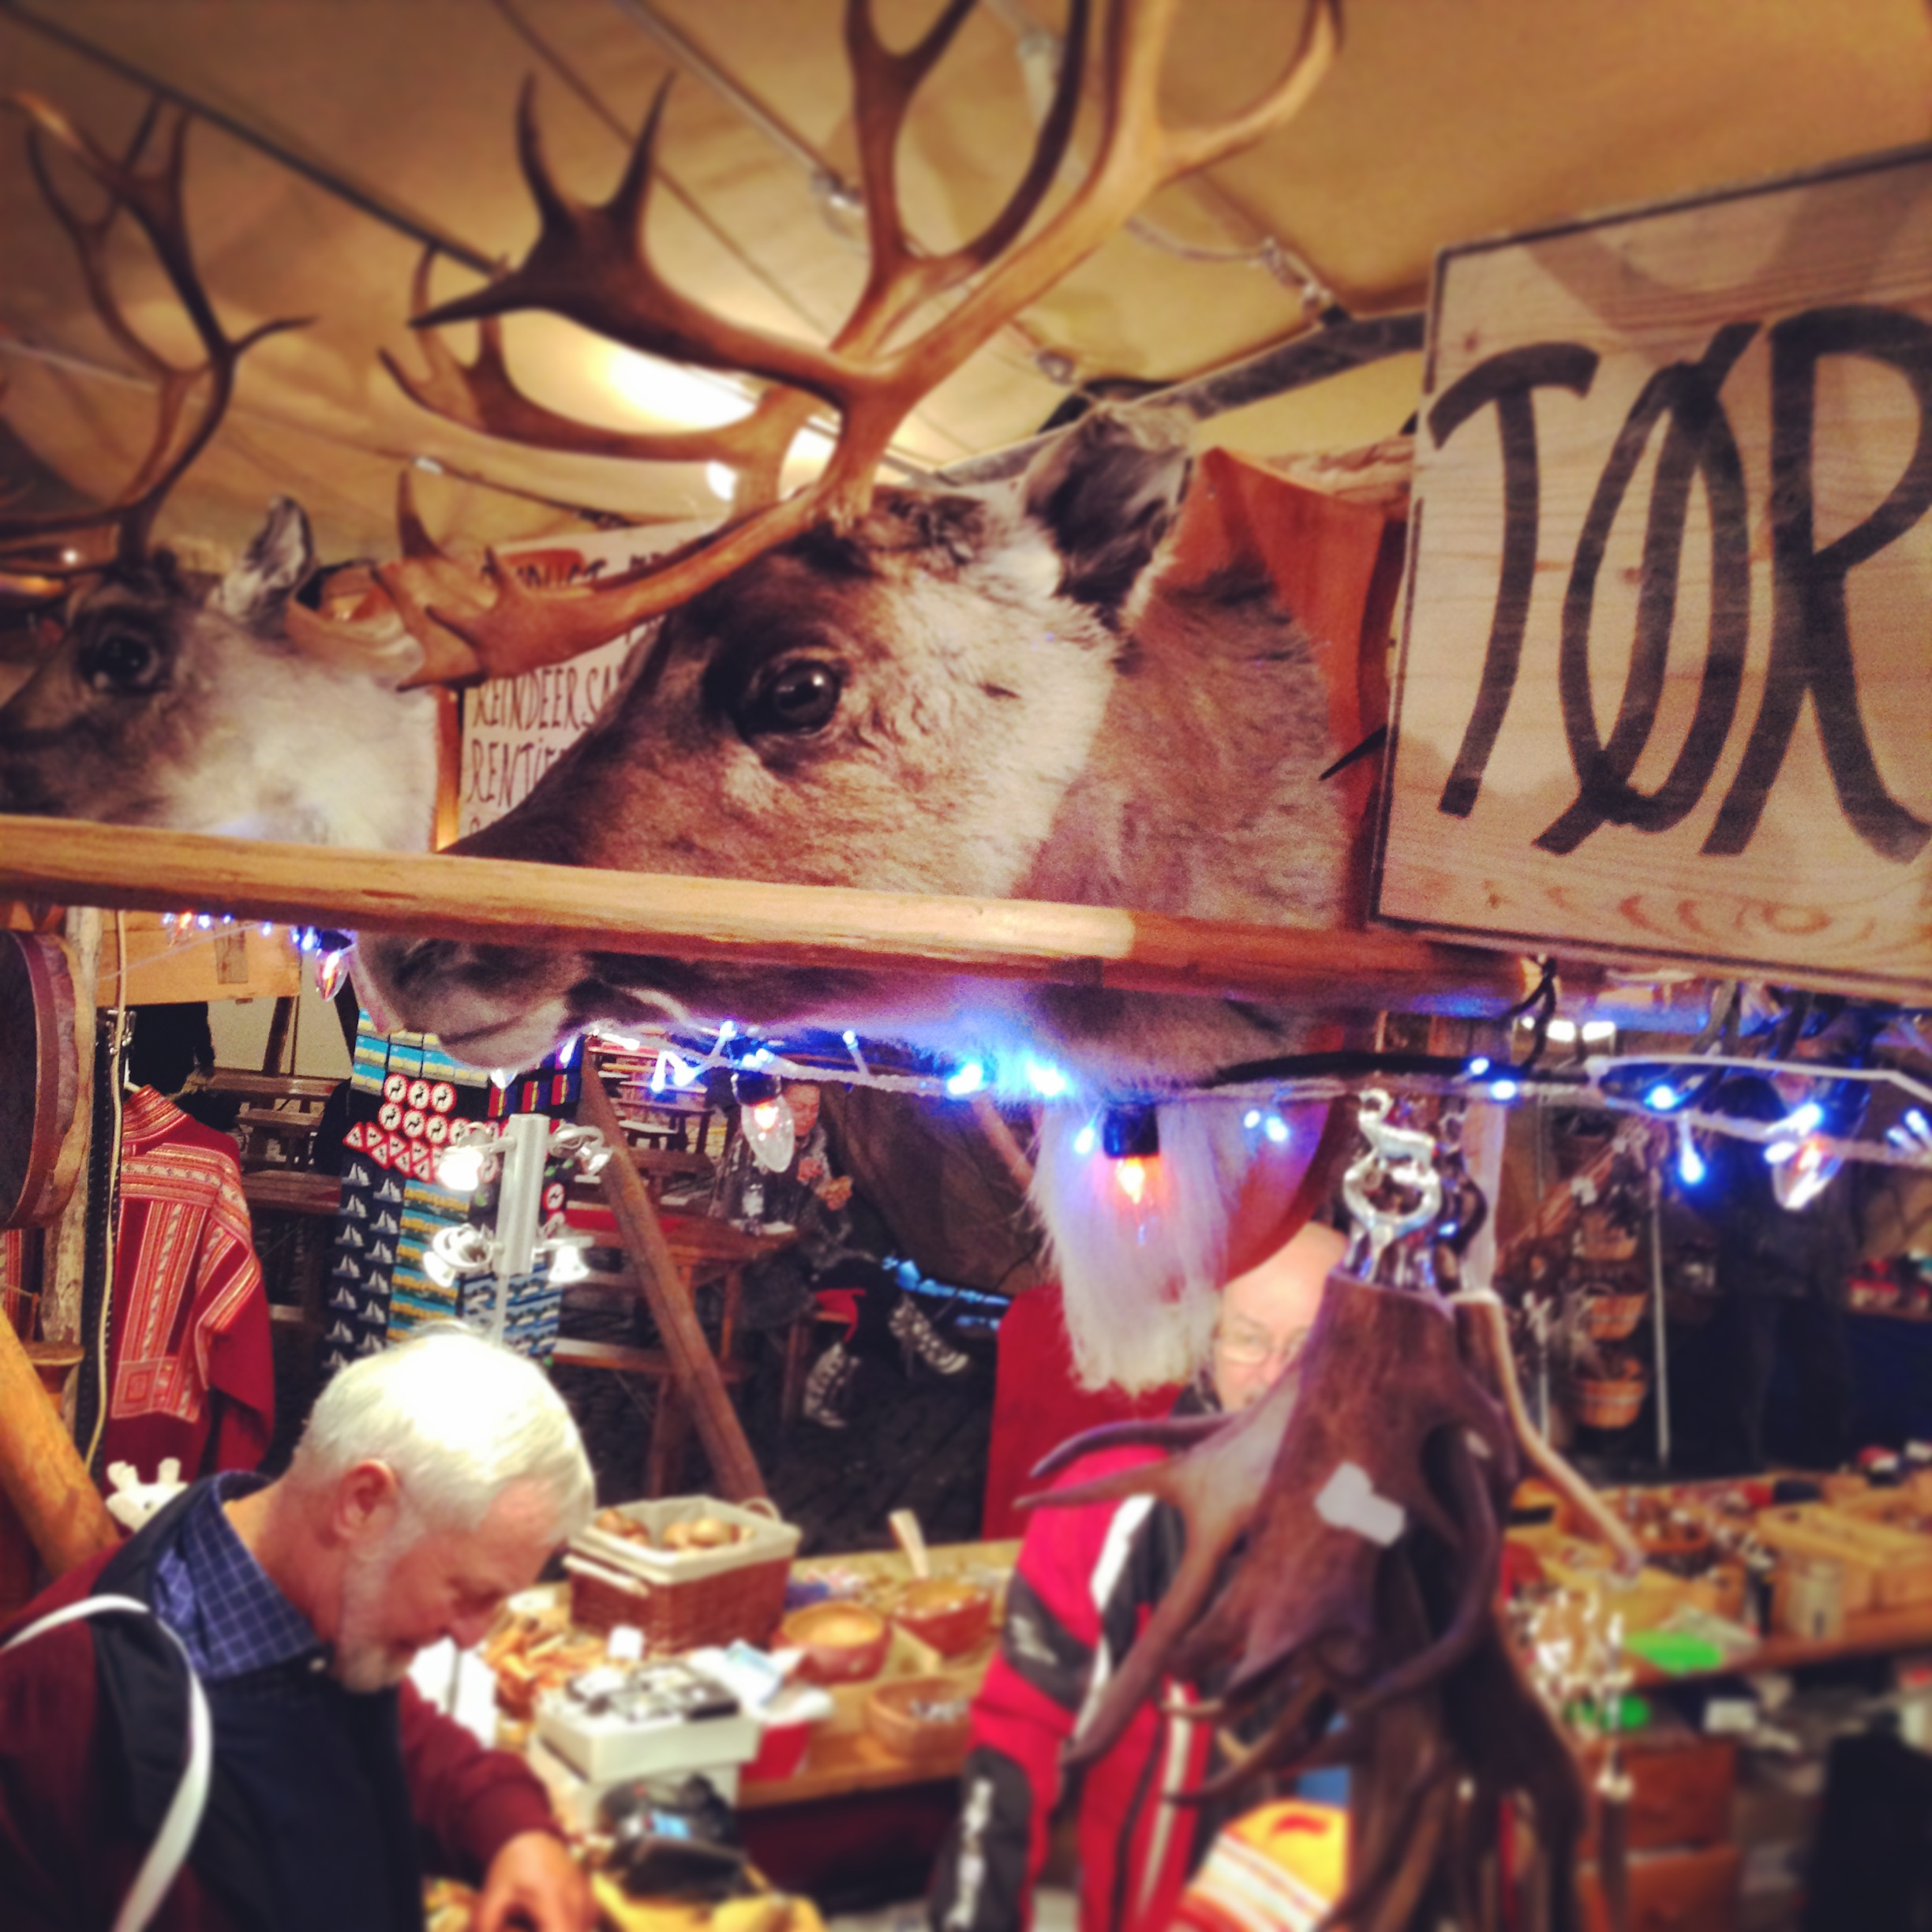 Rudolf has many uses in Norway's Christmas celebrations